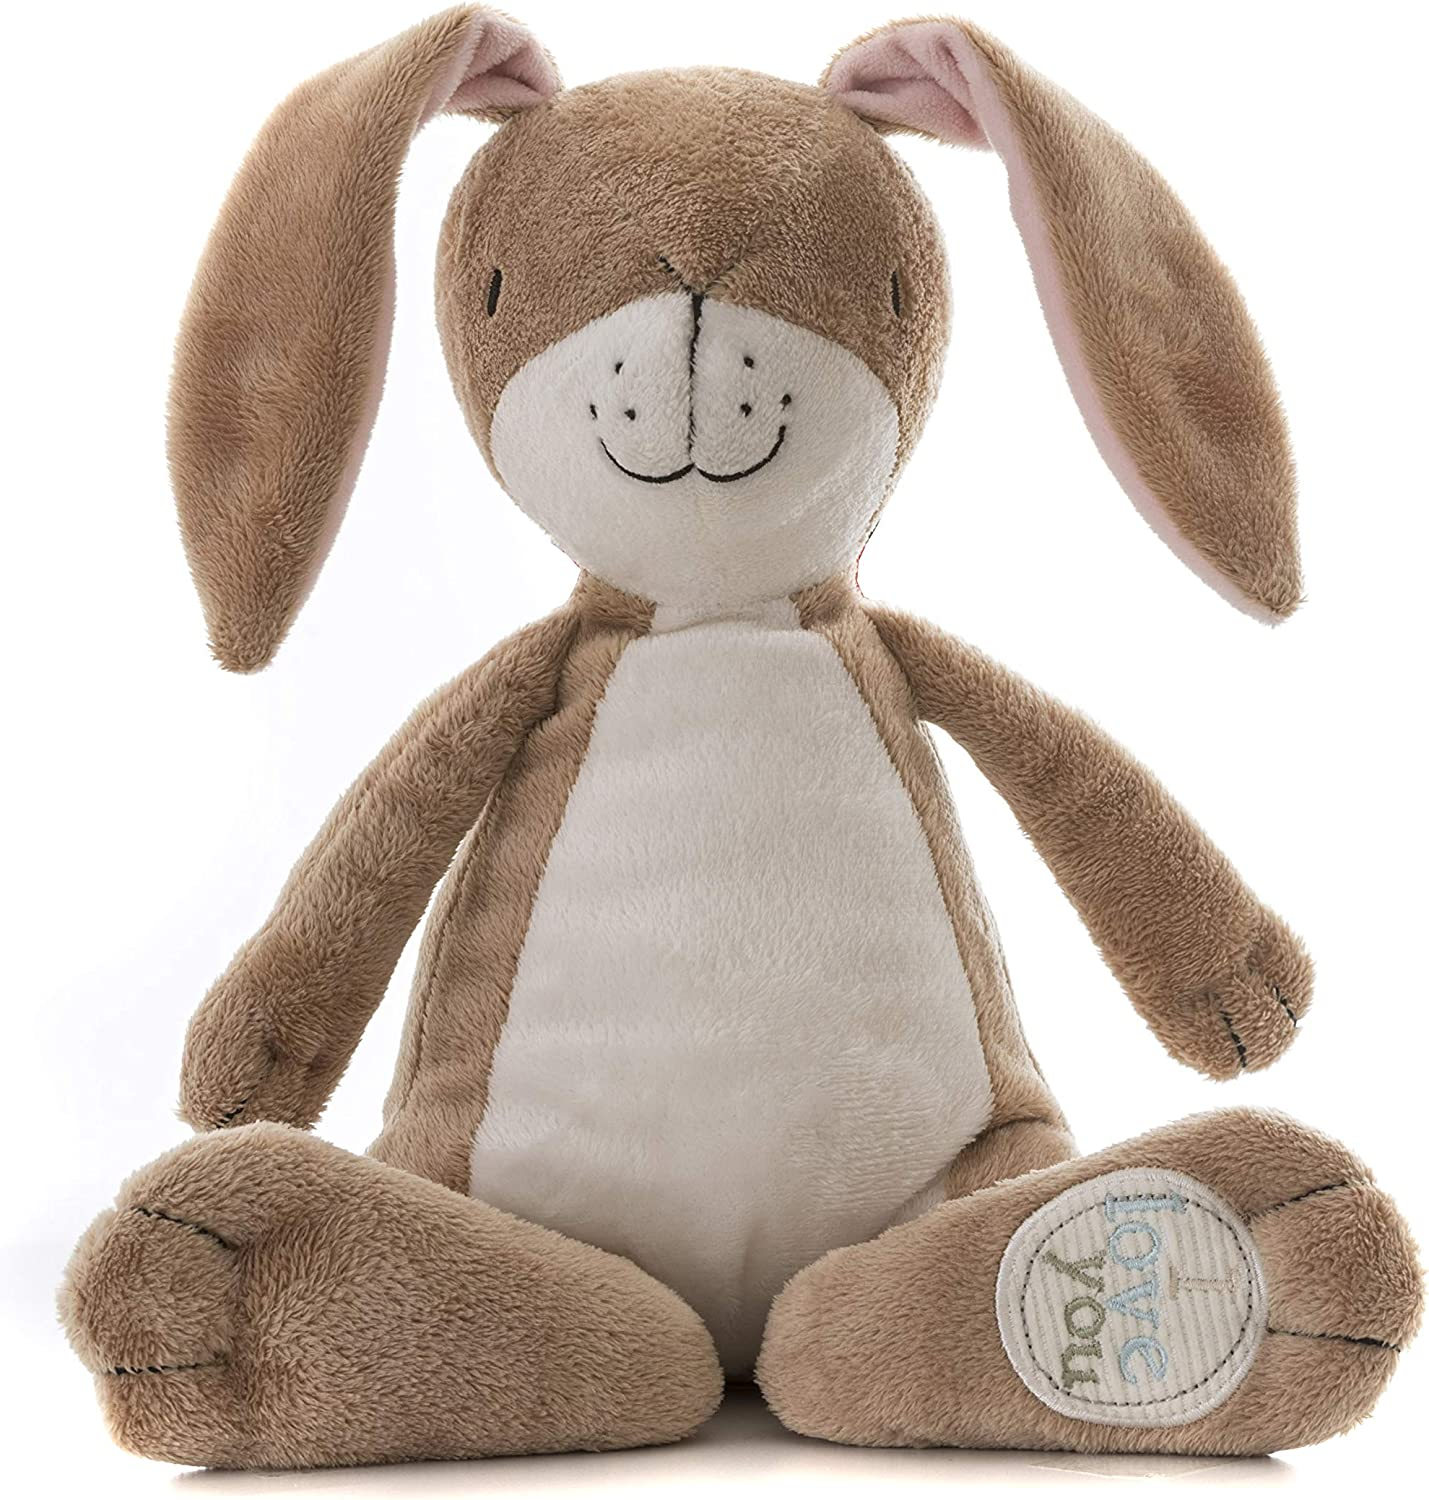 Guess How Much I Love You Large Nutbrown Hare 43% OFF £7.98 @ Amazon